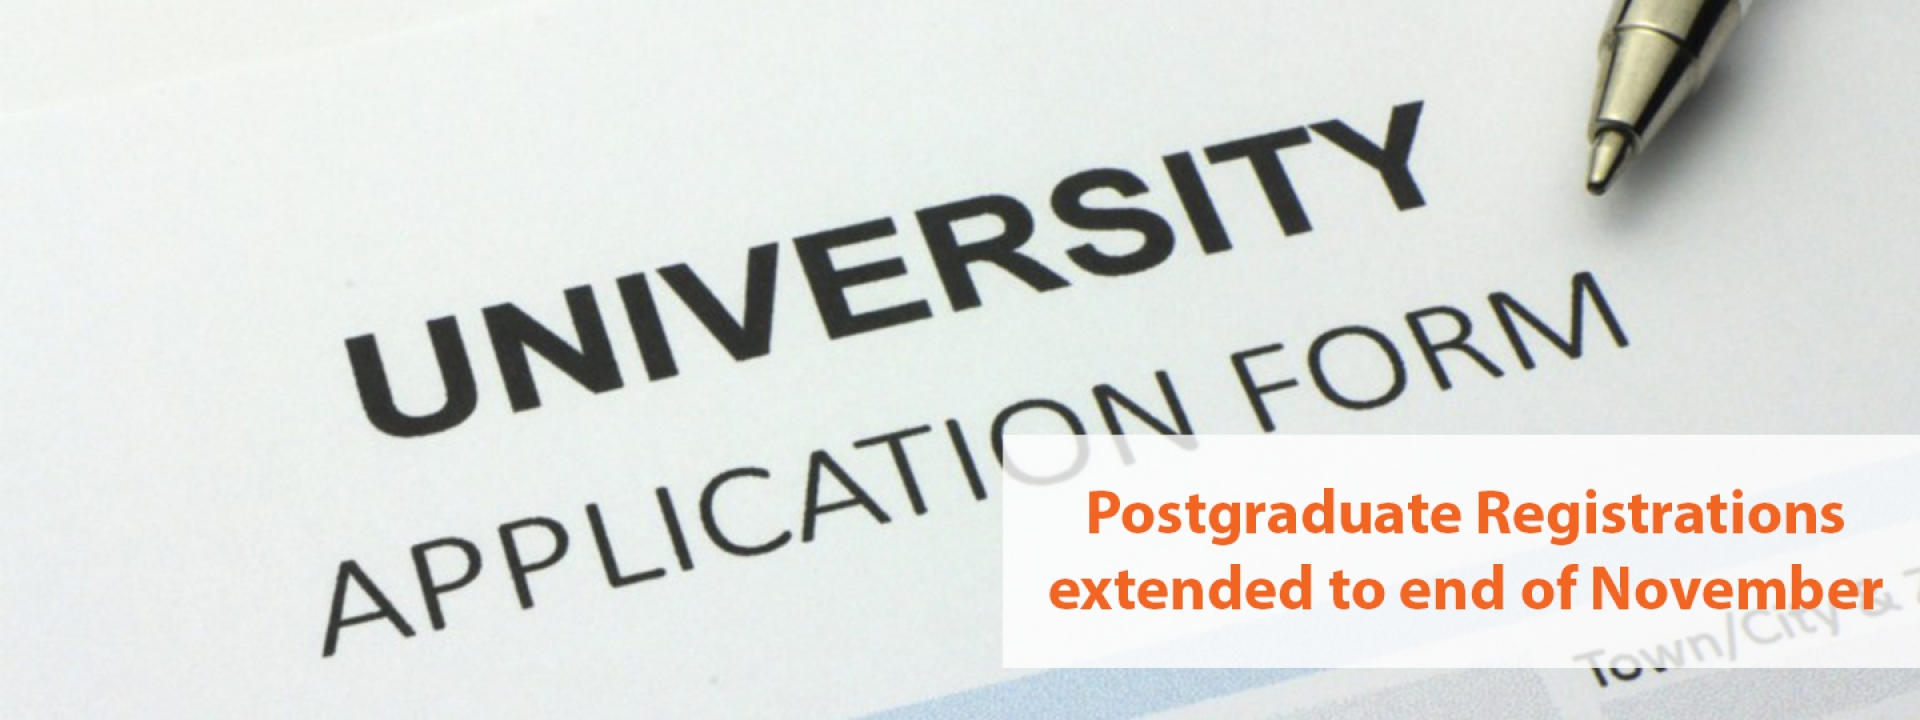 Thinking of applying to our Postgraduate Programme?